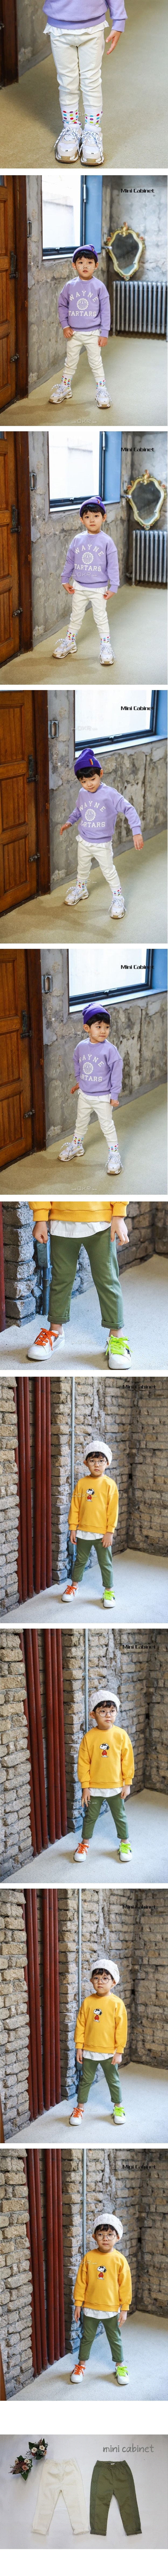 MINI CABINET - Korean Children Fashion - #Kfashion4kids - Cotton Rib Pants